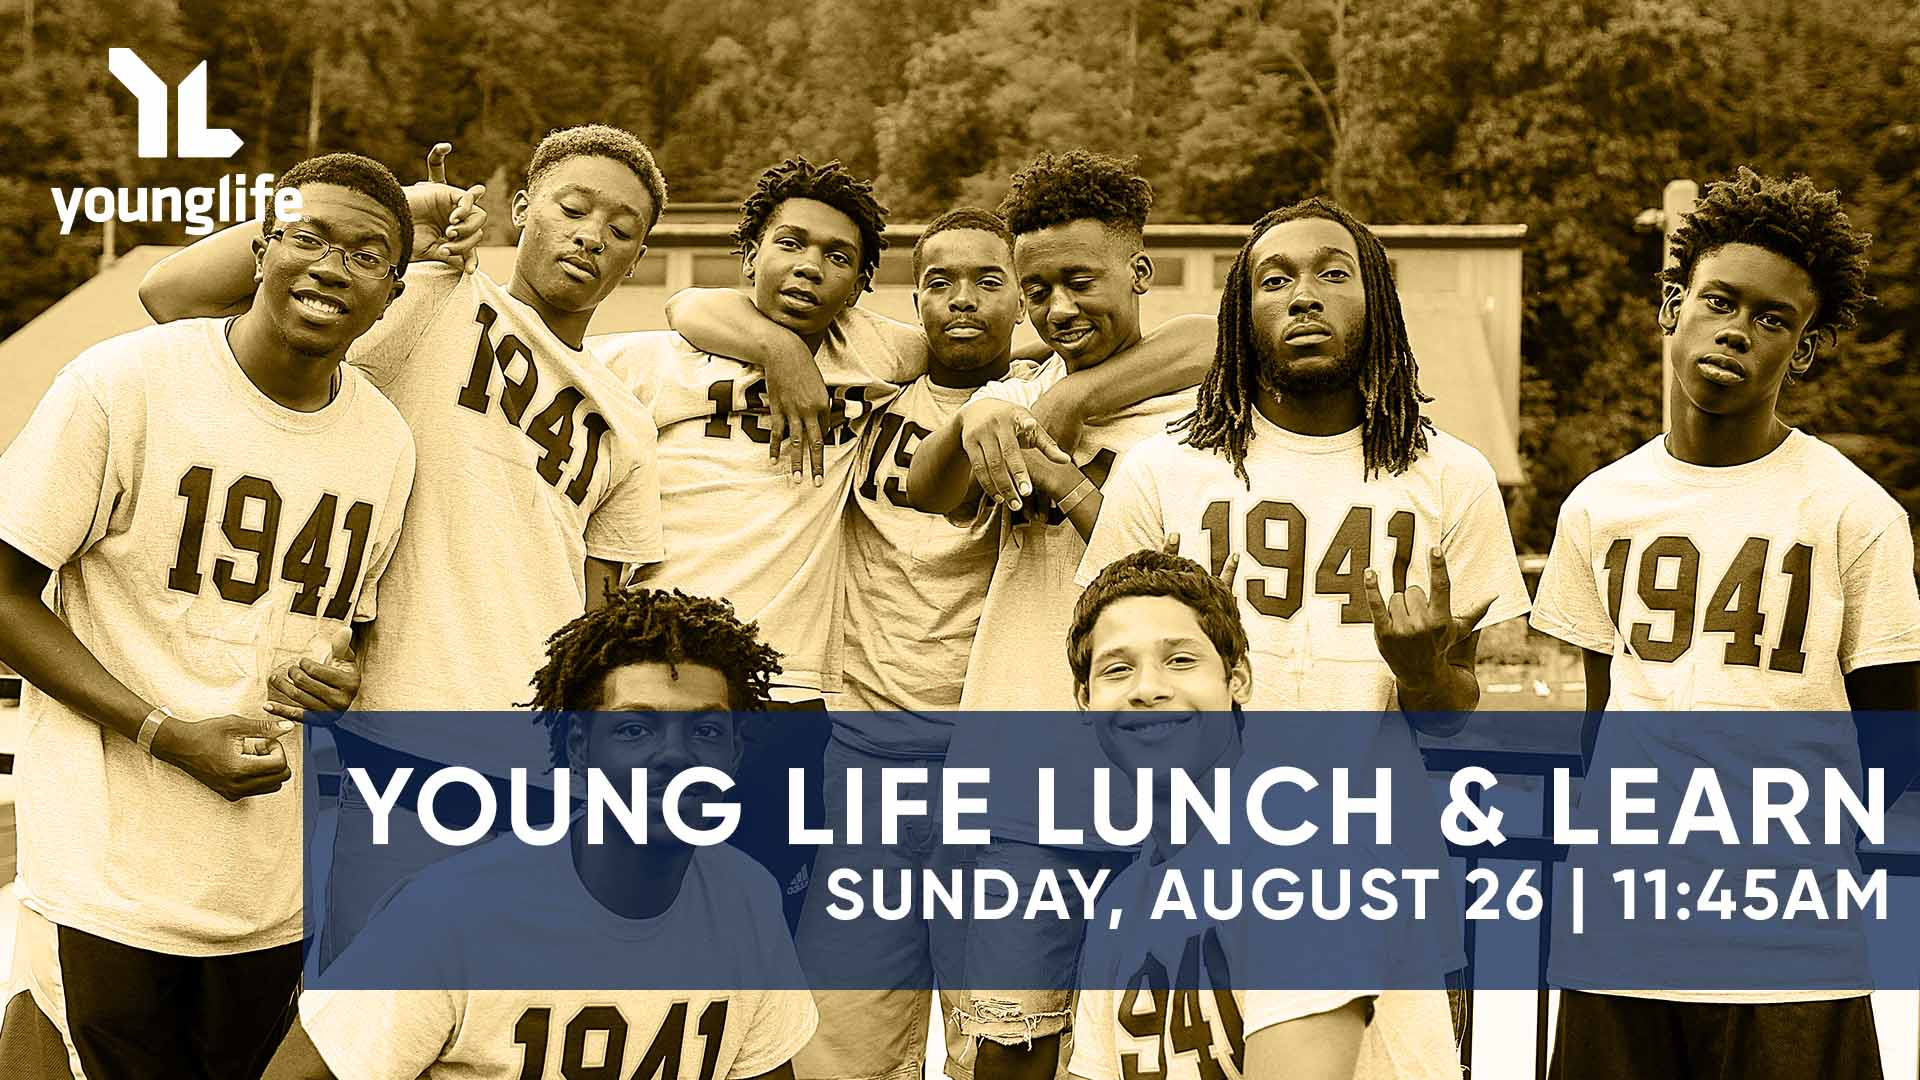 Young Life Lunch & Learn